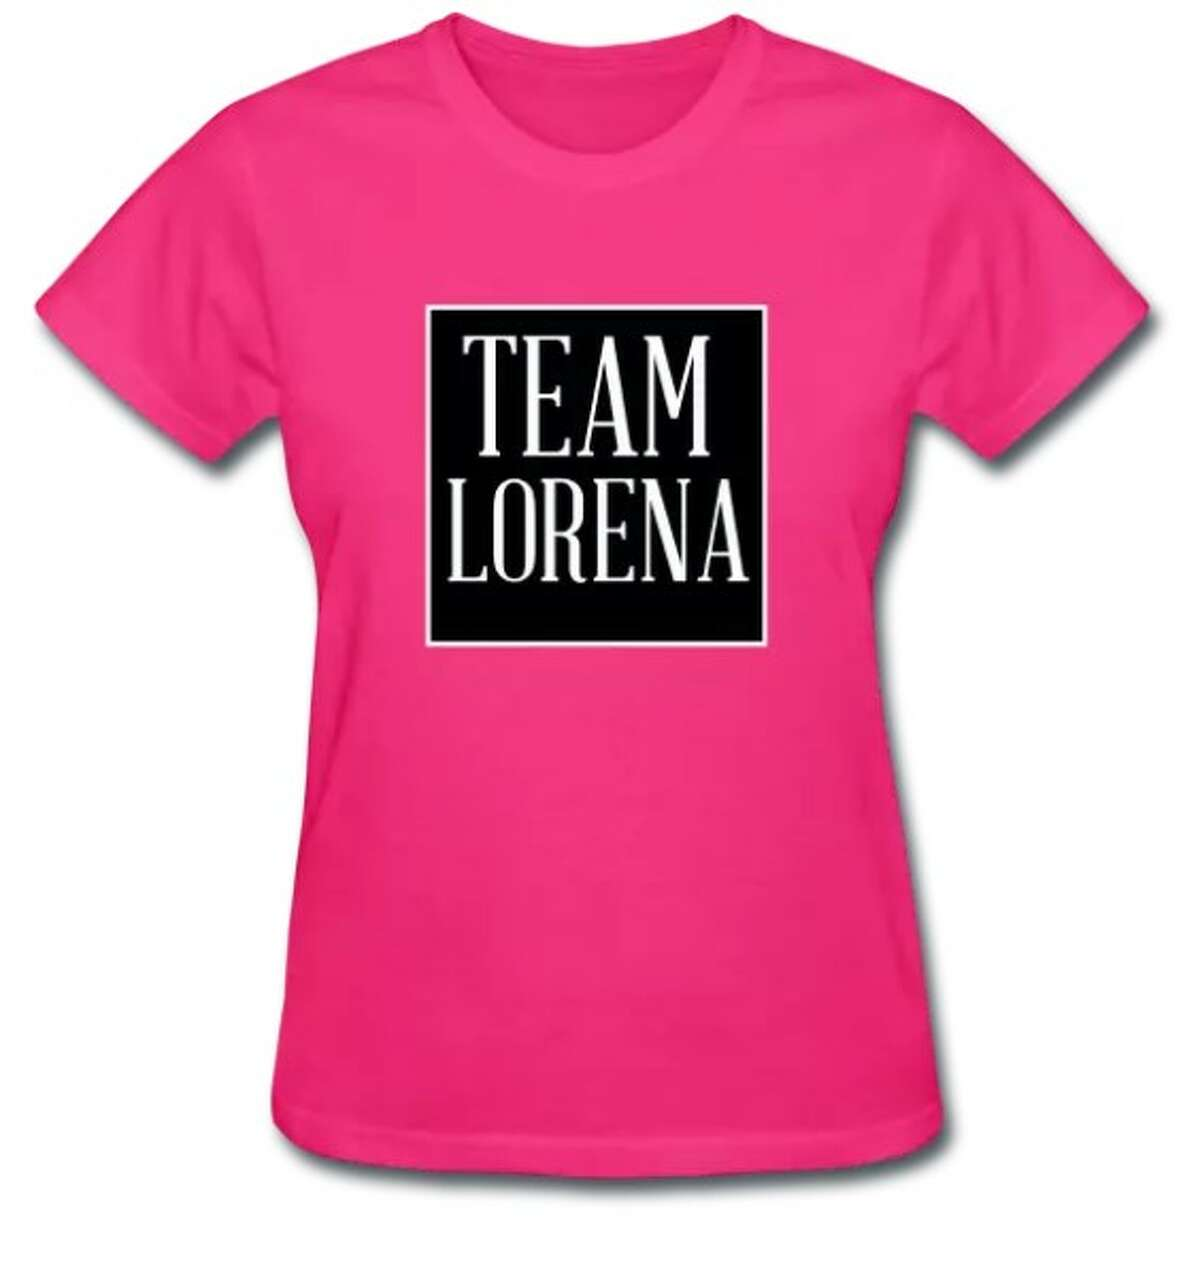 Texicana Lorena Martinez released a new line of merchandise based on the San Antonio reality show. Click here to see all the merchandise.